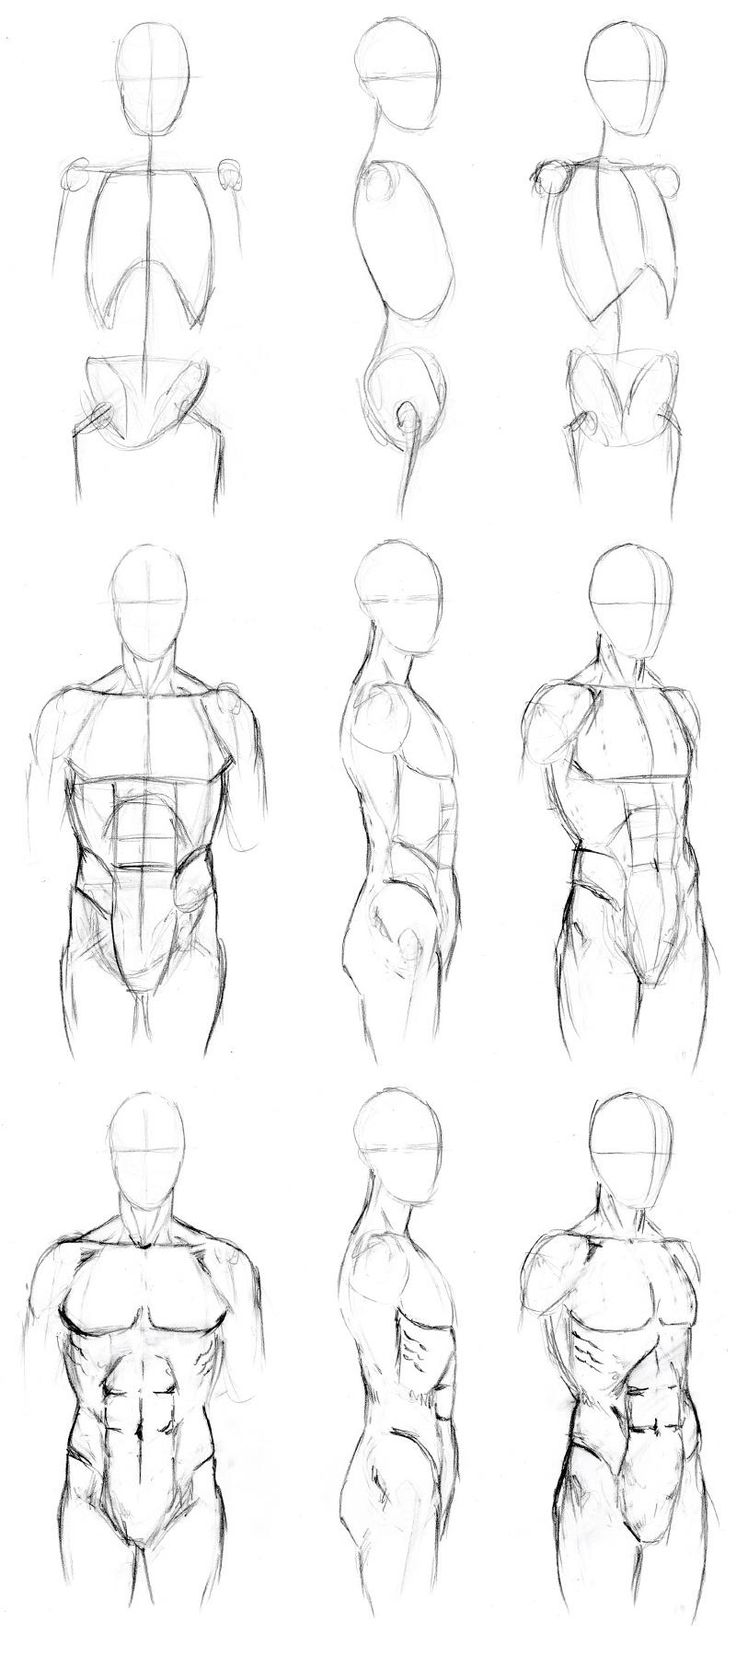 Basic Male Torso Tutorial by timflanagan on deviantART  Step 1: Skeleton Sketch your basic structure outline. For the torso we will of course need the vertebrae, ribcage and pelvis. Don't worry about sketching these the -exact- shape of the actual bones.  Step 2: Muscles Sketch in the general shapes of the different sets of muscles. Check your muscle layout with an anatomy chart or constructive anatomy book.  Step 3: Skin In this stage, you're making your sketch ... (read the rest at the…